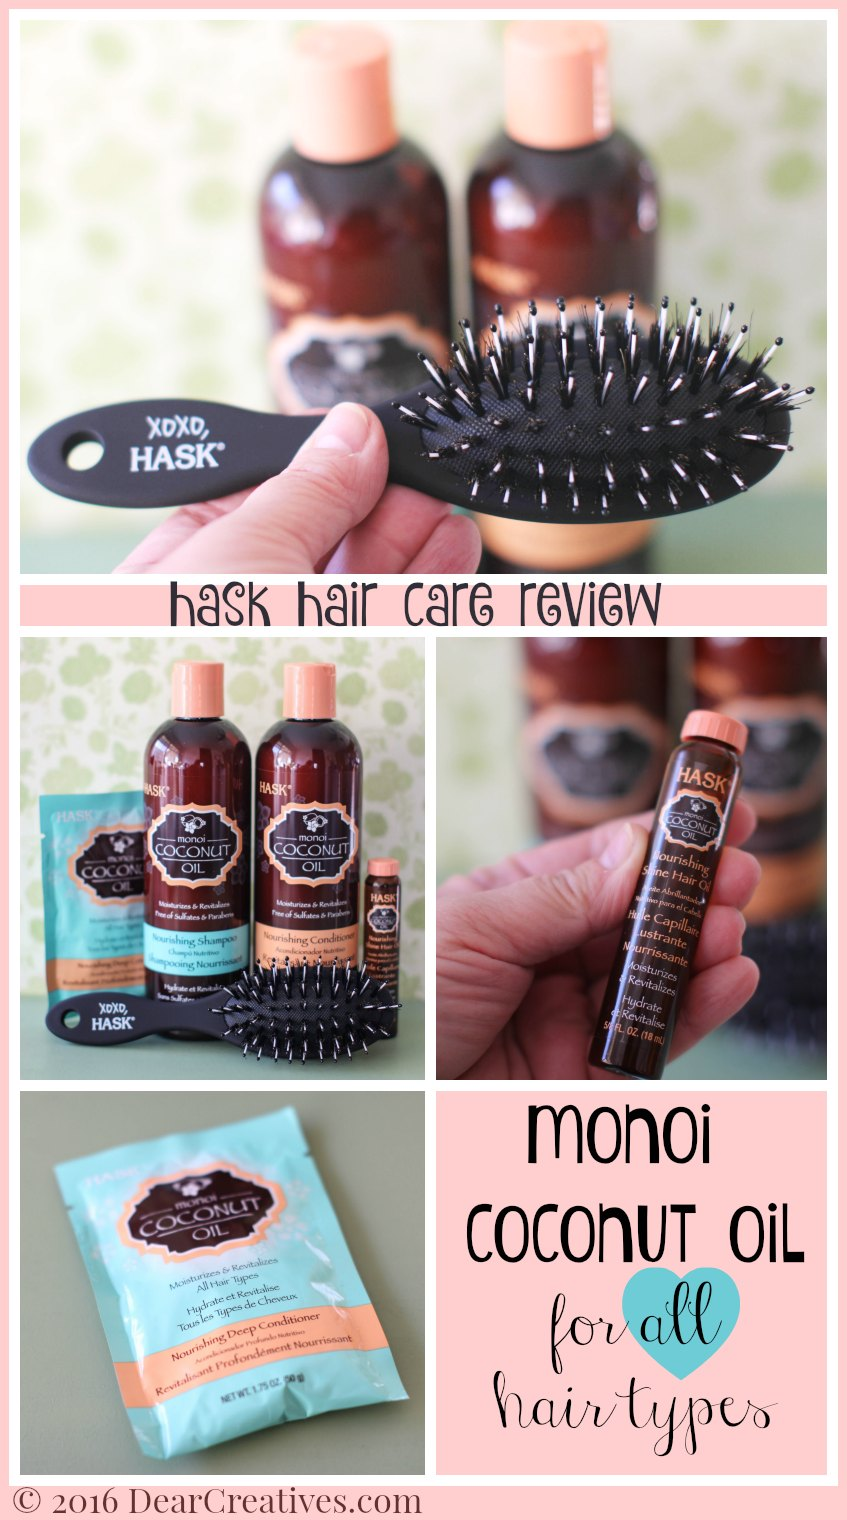 Hair Products |Beauty Hair Care Hask Coconut Oil Shampoo And Conditioner beauty review